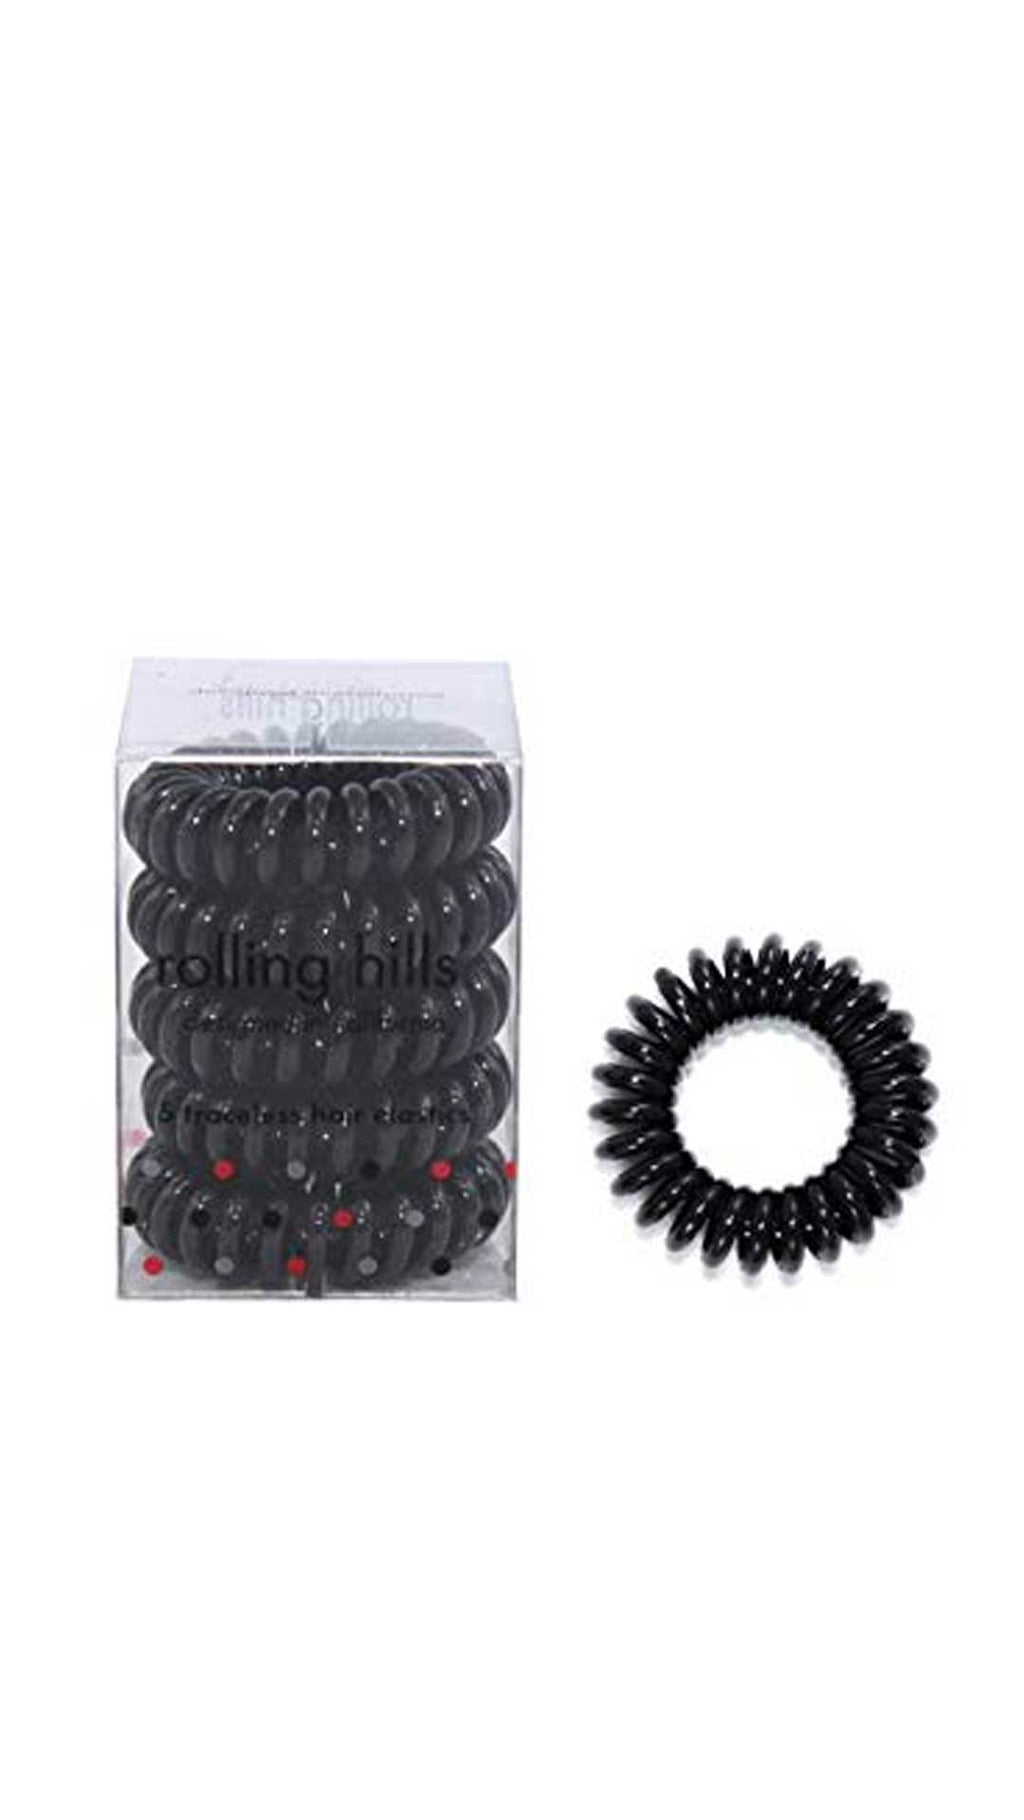 ROLLING HILLS HAIR RINGS BLACK - ROLLING HILLS